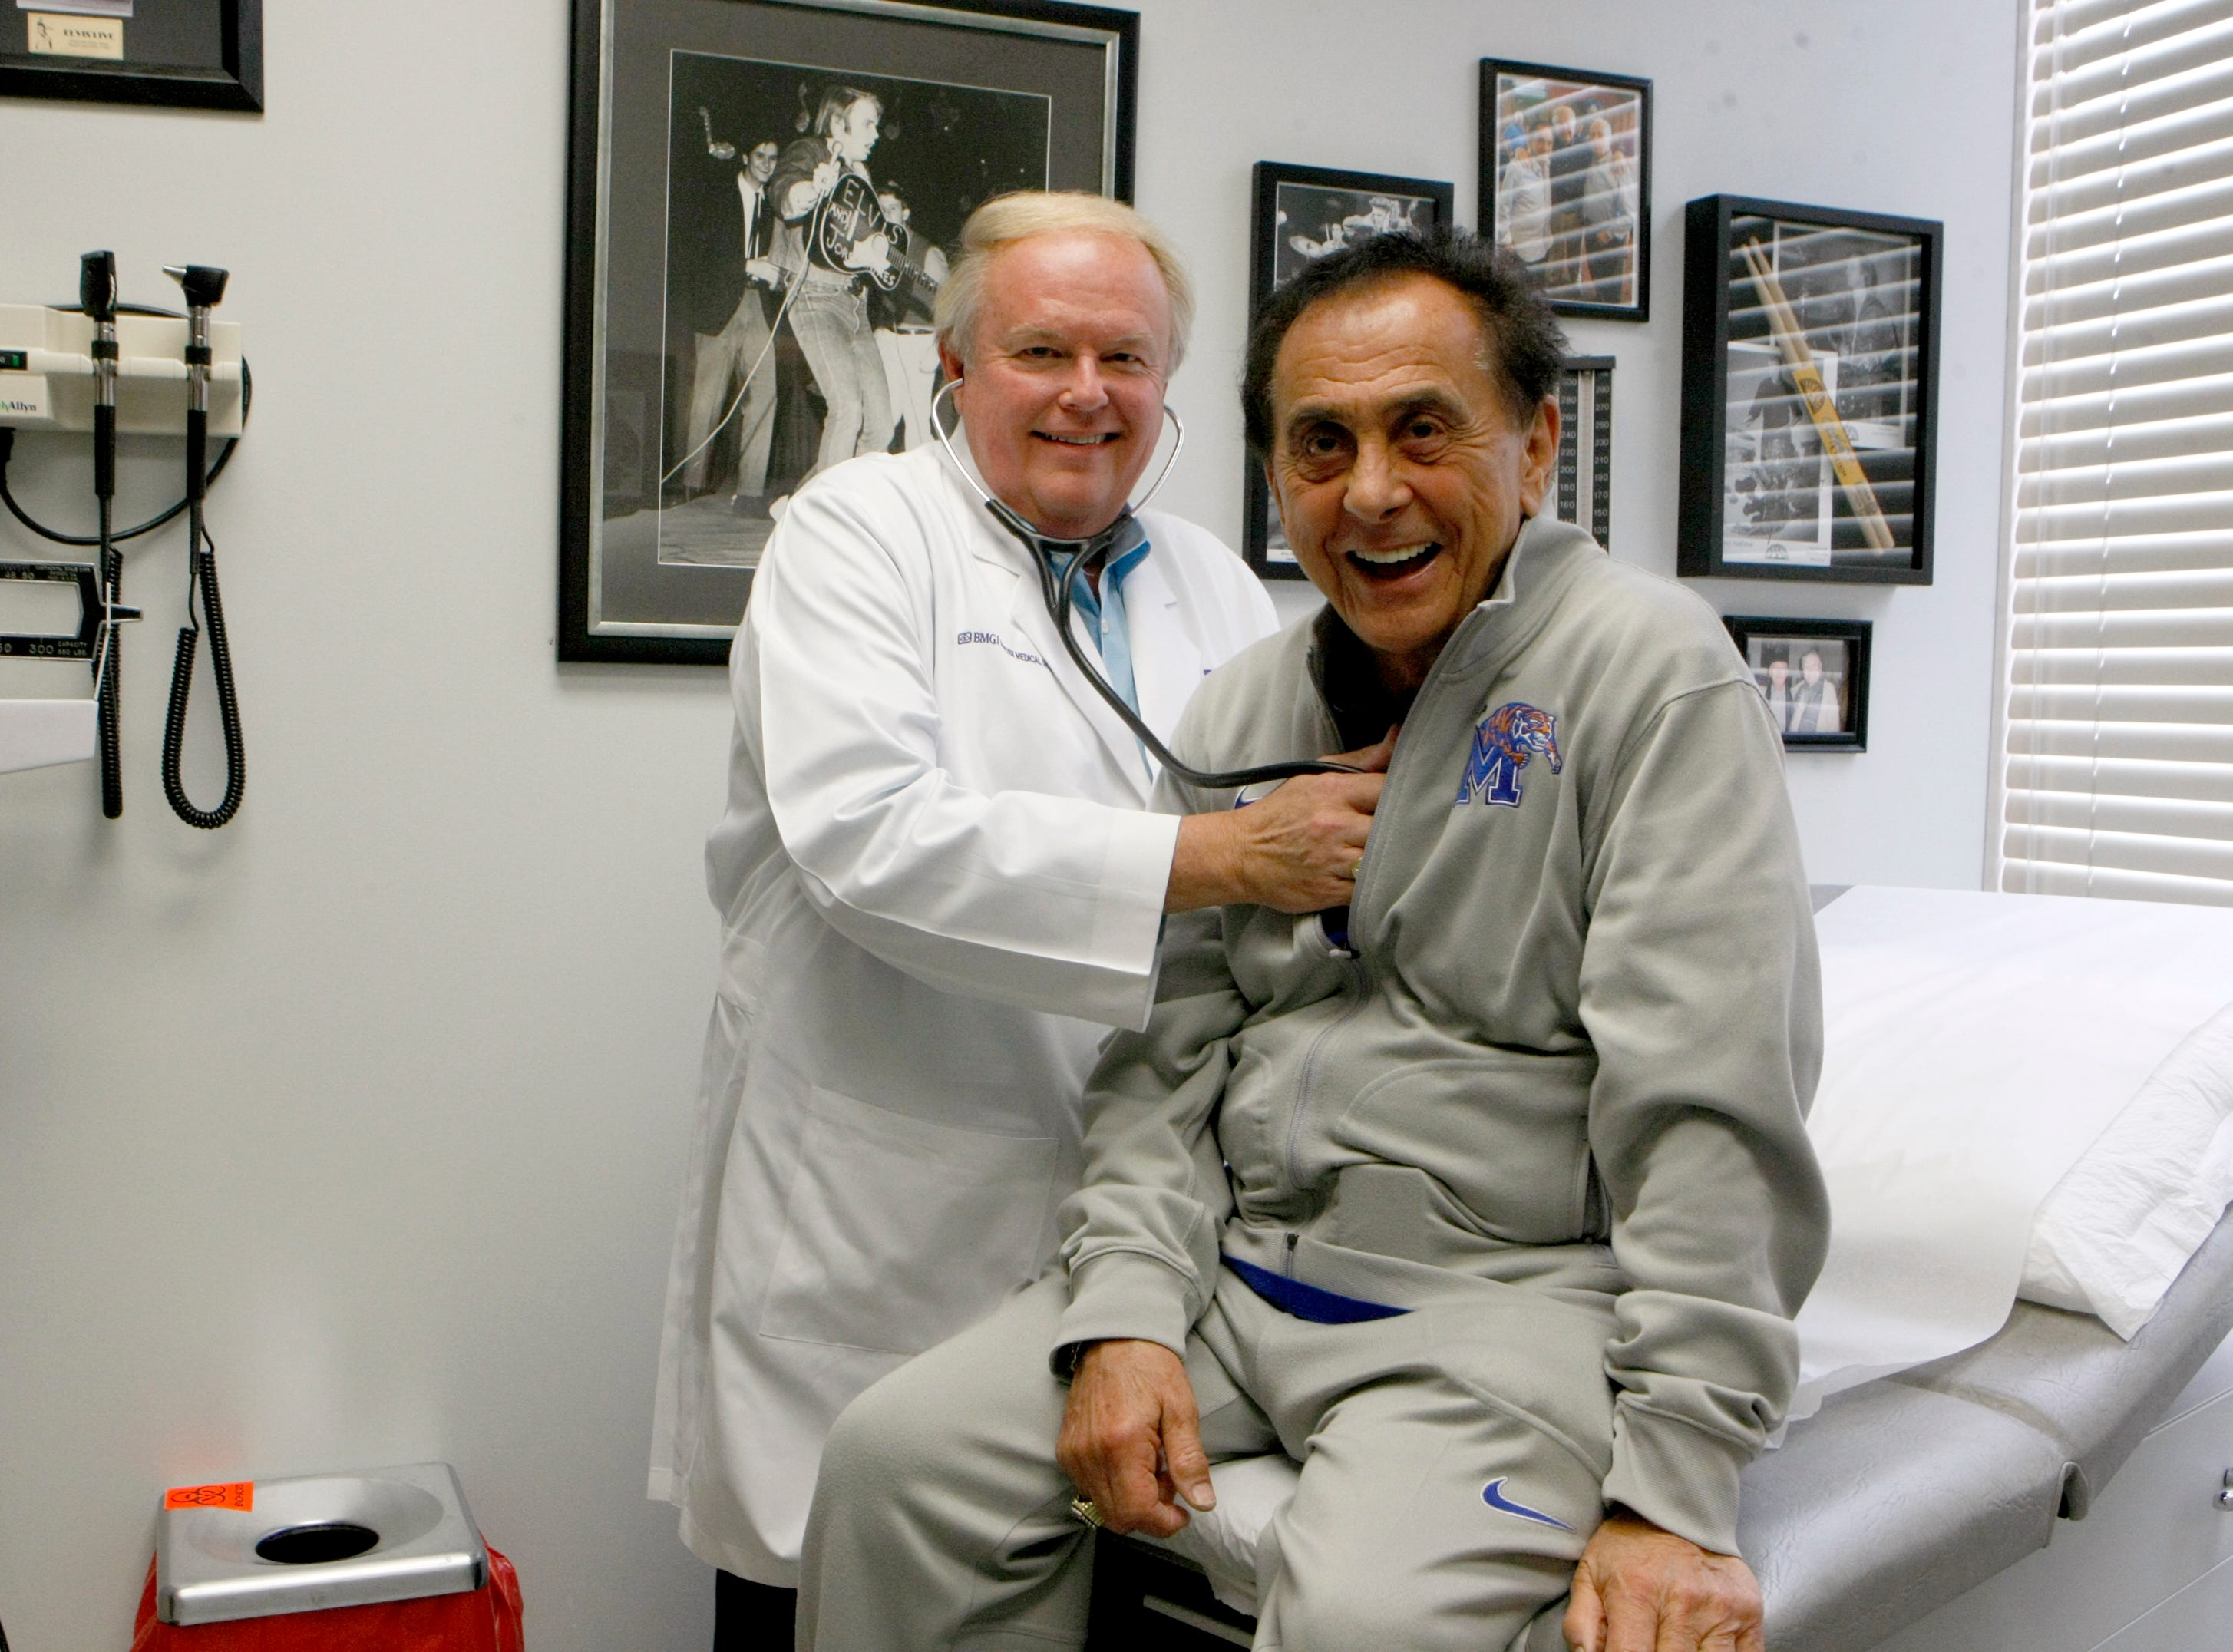 July 31, 2014 - Dr. Mark Castellaw is the doctor to many in the Presley inner circle, including longtime Elvis friend, George Klein. The doctor has an Elvis examination room, which holds much of the memorabilia  at the Baptist Medical Group office where he works. Castellaw was in practice with Dr. Nick, Elvis's doctor, for many years.